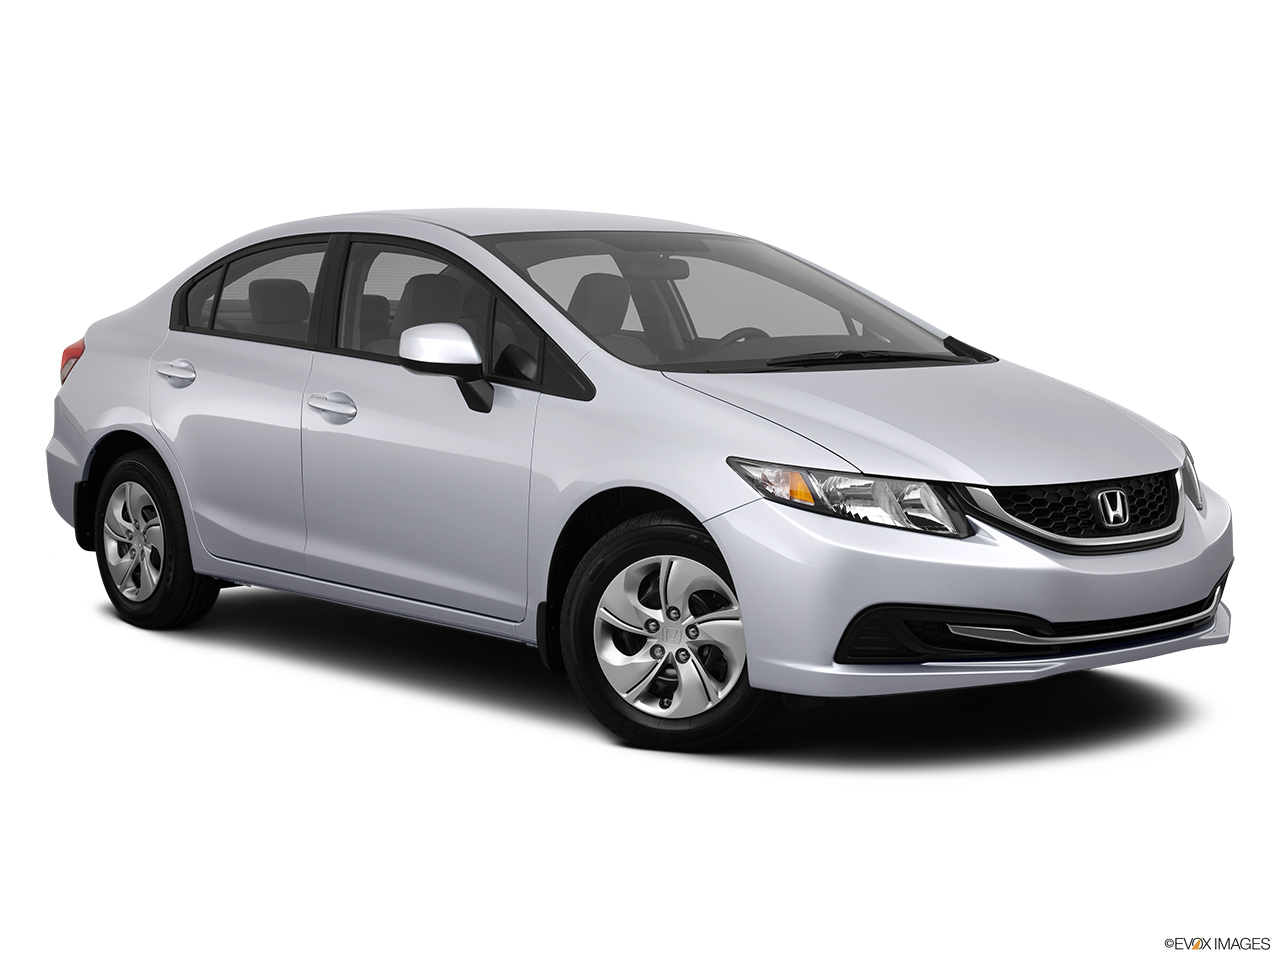 2013 honda civic lx coupe review wroc awski informator internetowy wroc aw wroclaw hotele. Black Bedroom Furniture Sets. Home Design Ideas